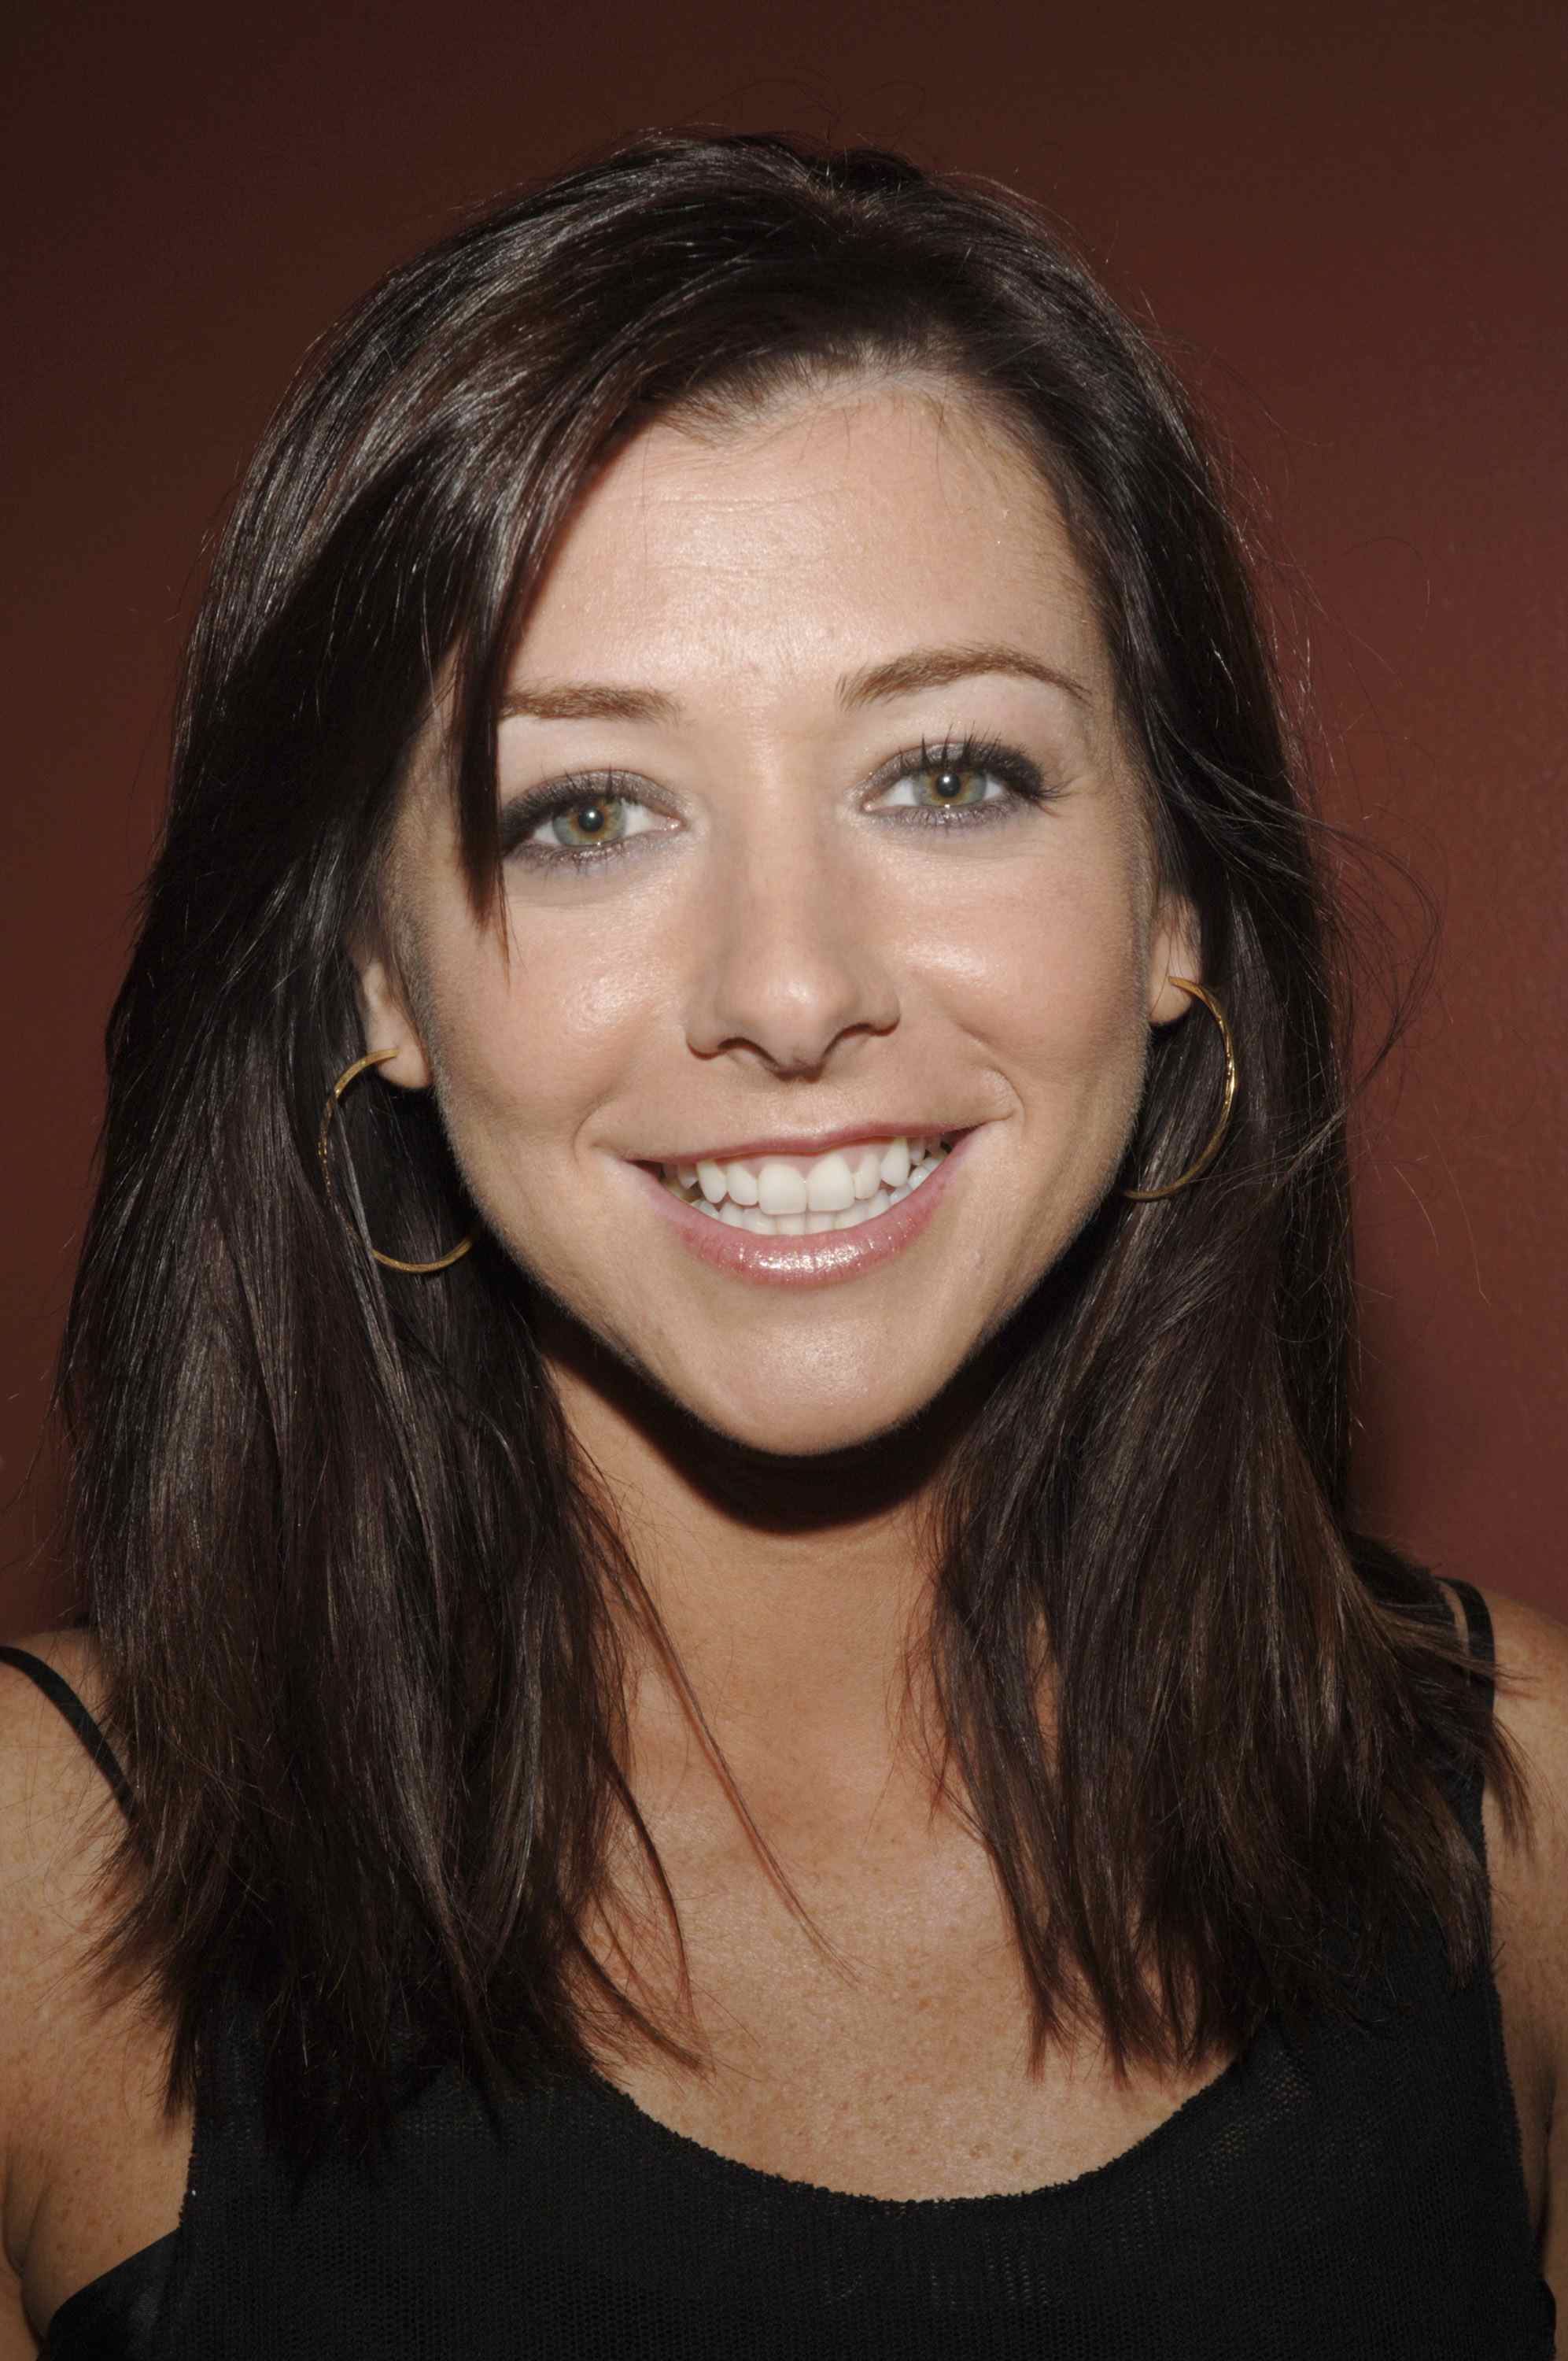 Pictures of Alyson Hannigan  Pictures Of Celebrities